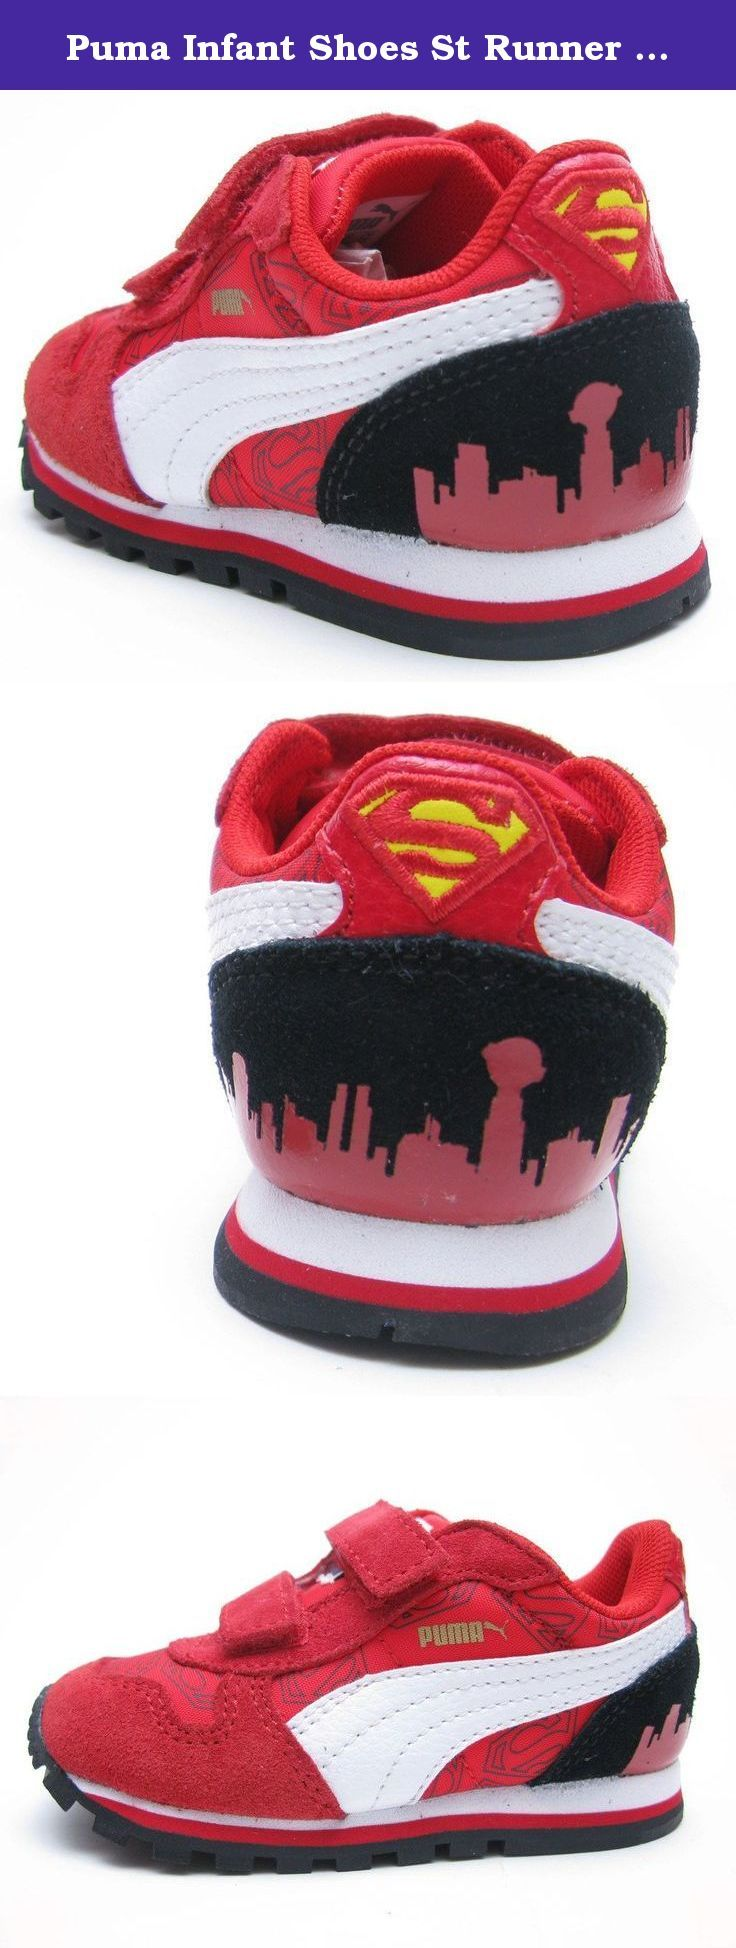 Puma Infant Shoes St Runner Superman Hero Red Fashion (9). ST Runner Superman Toddler Kids in High Risk Red/Rio Red by Puma.